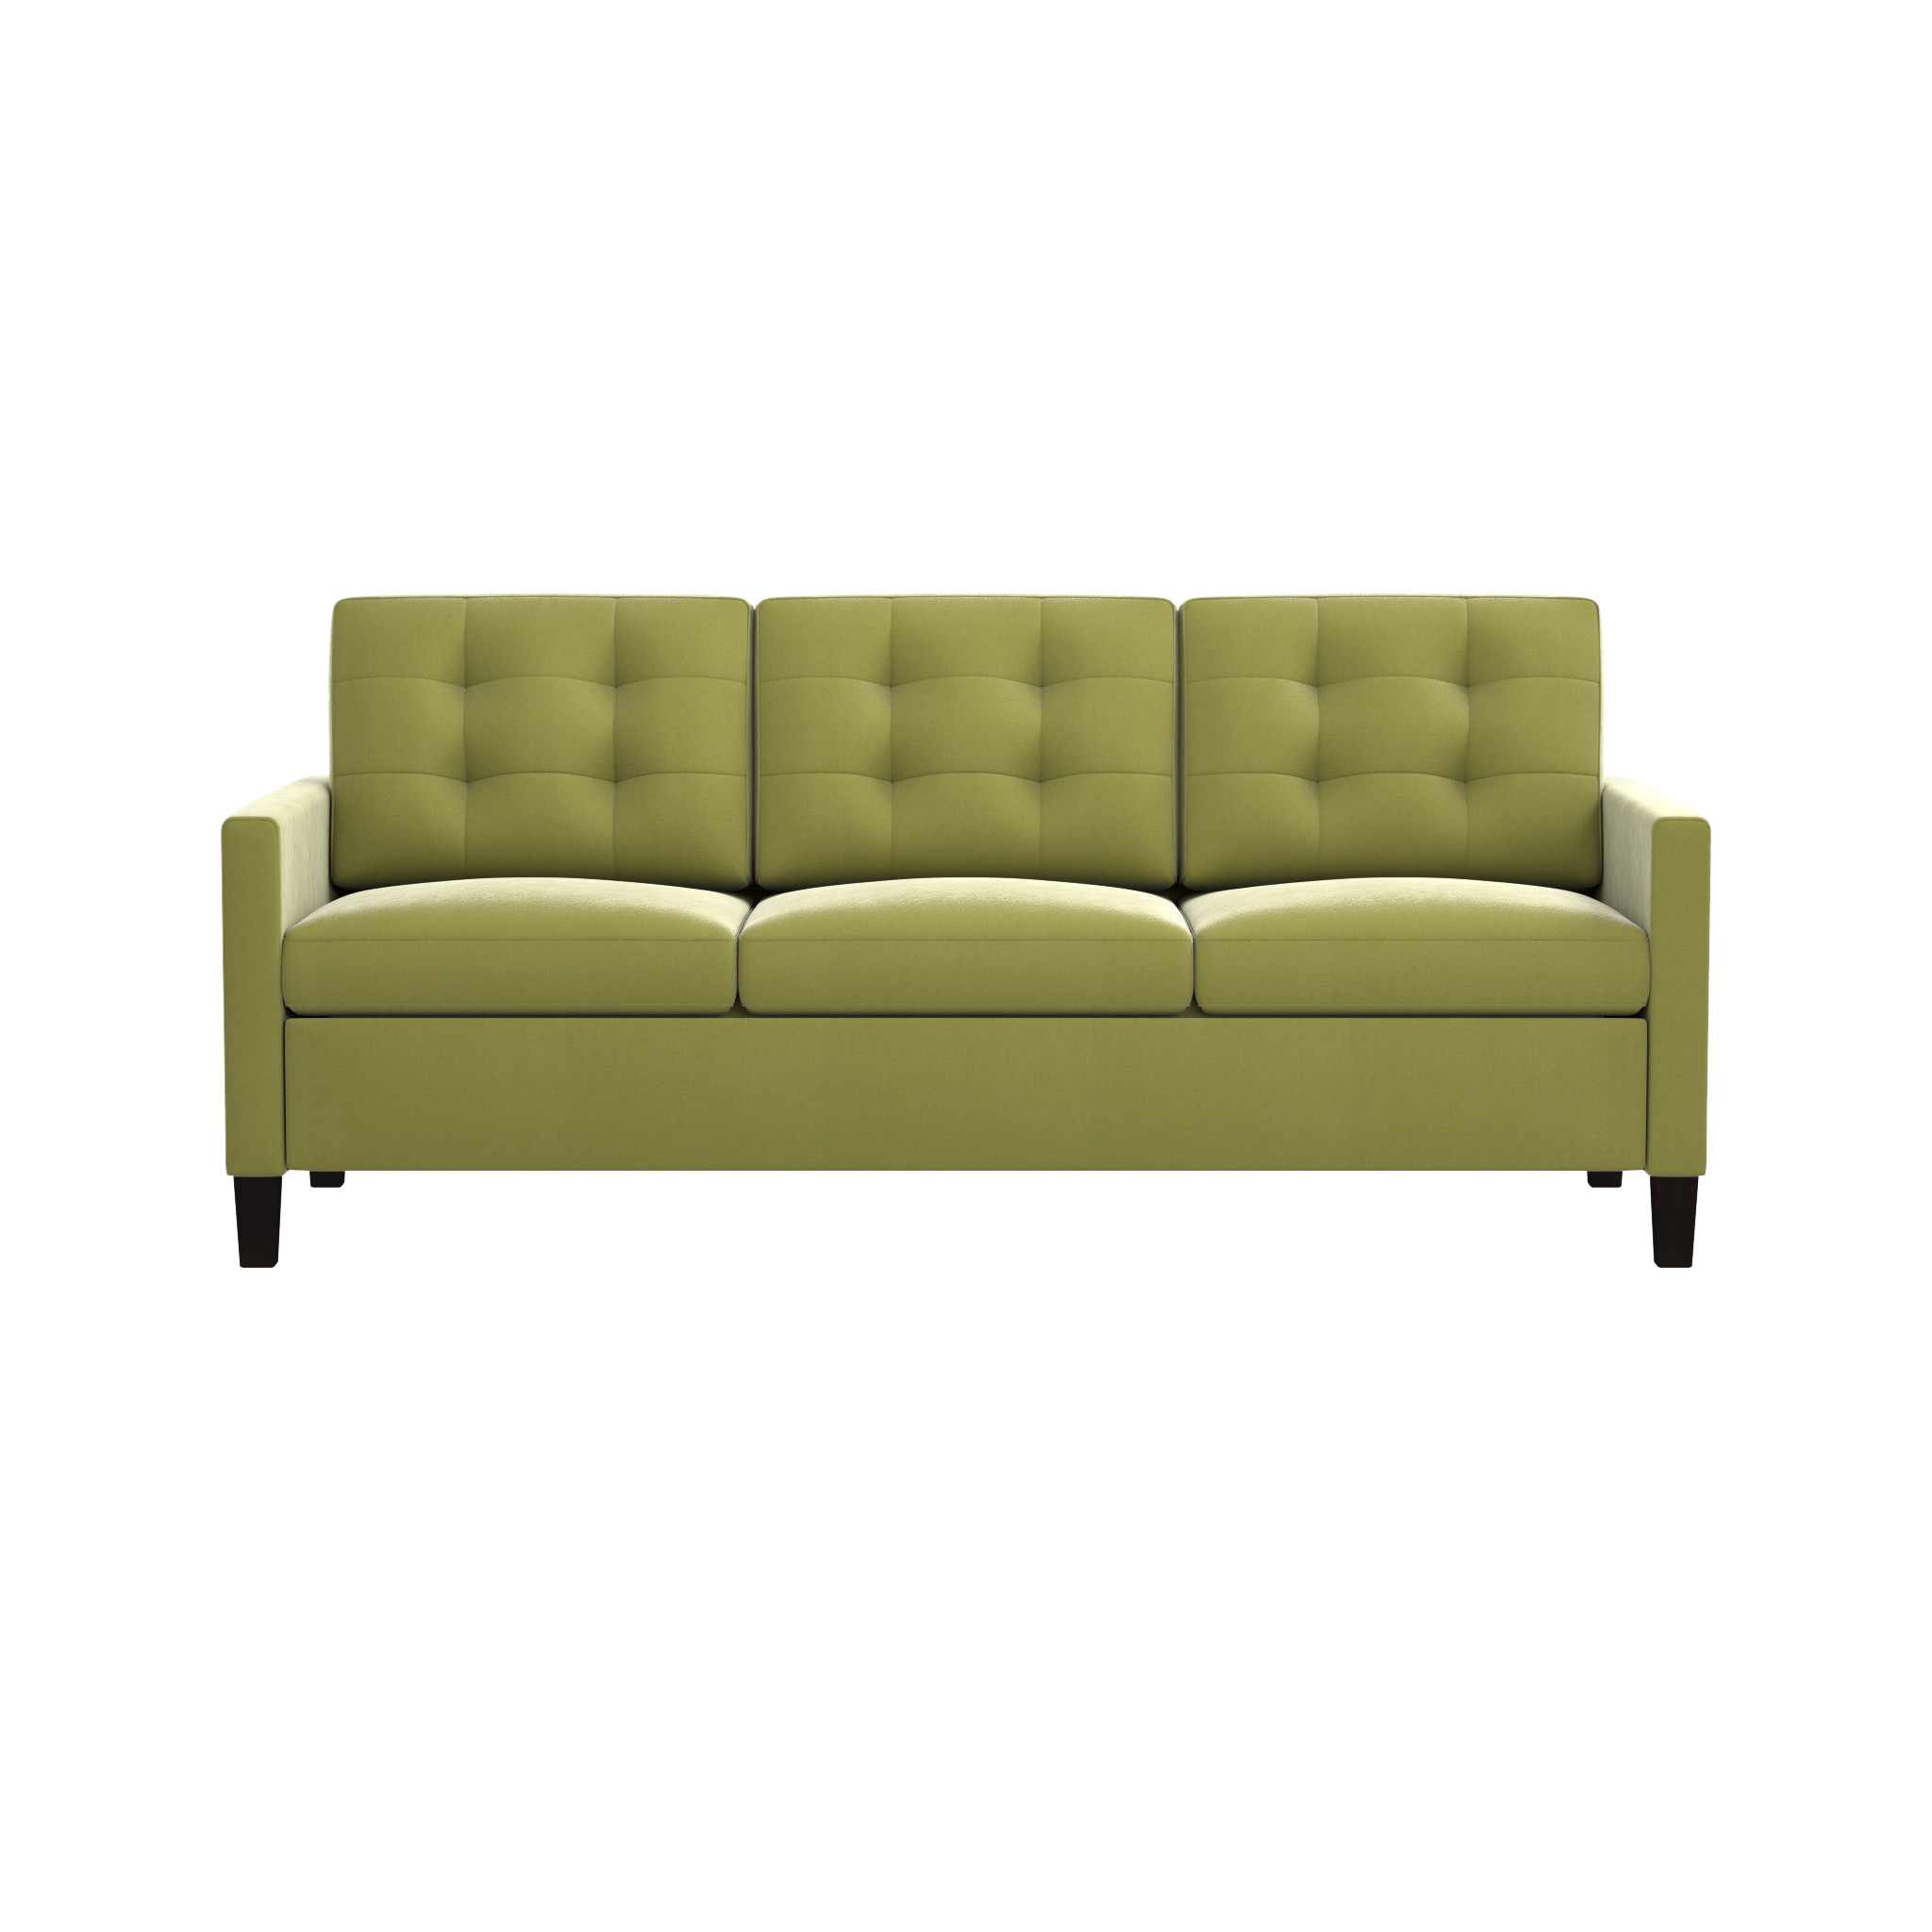 Shop Karnes King Sleeper Sofa Truly A Sofa And Truly A Bed